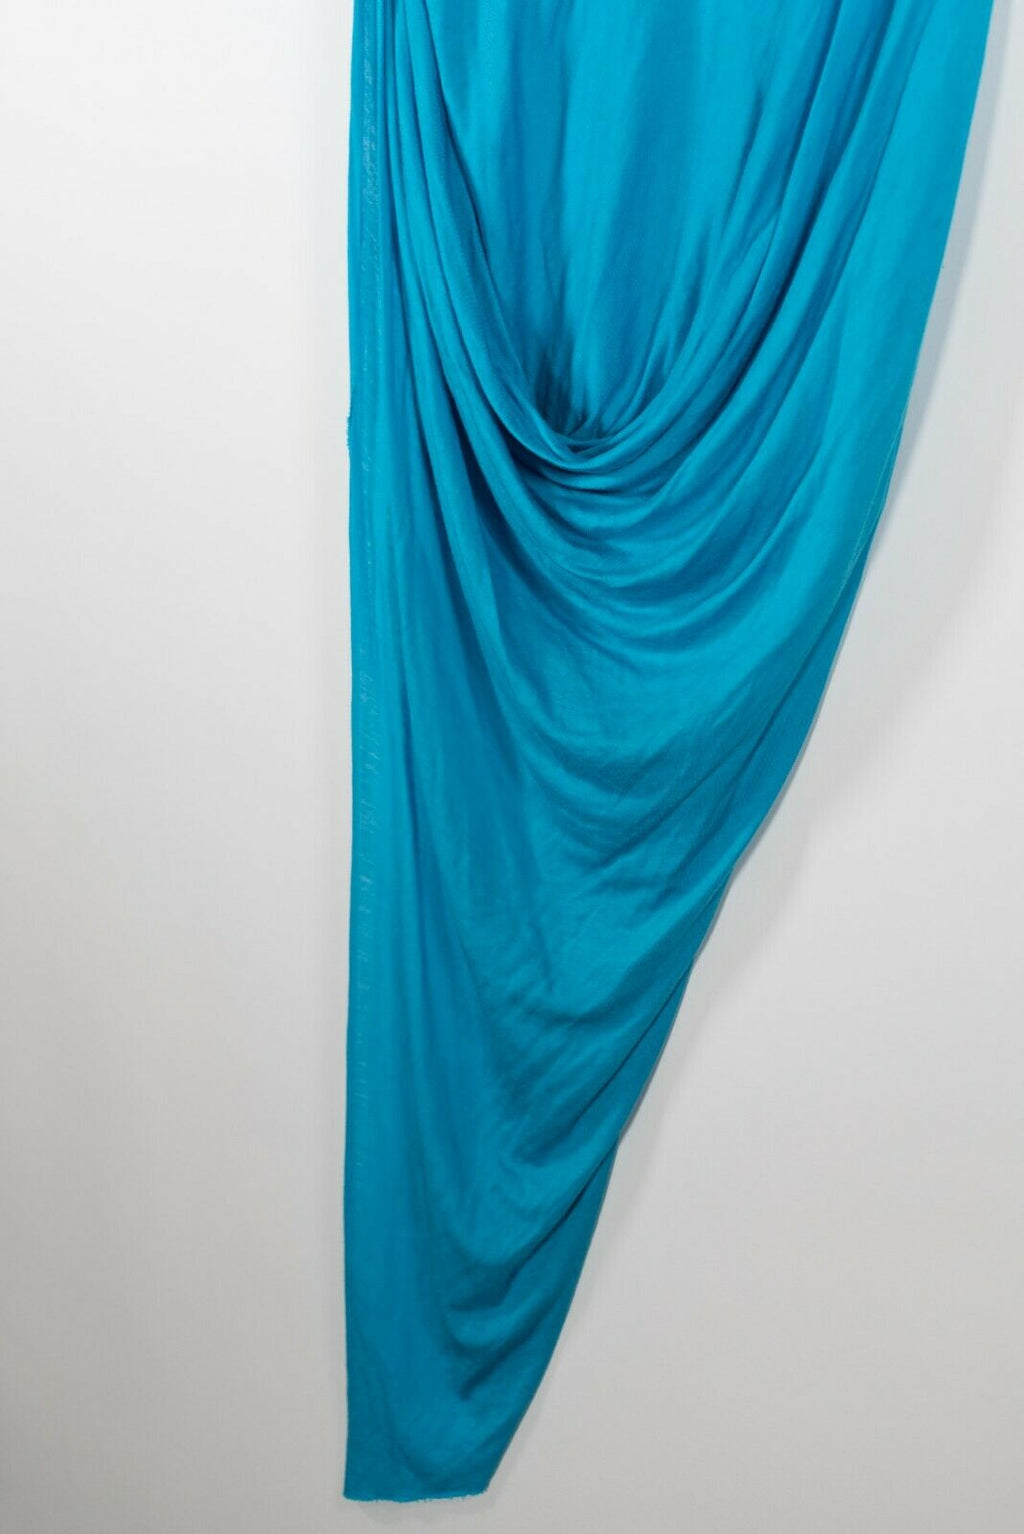 HELMUT Helmut Lang Womens Size Medium Blue Skirt Casual Skirt Maxi Midi Jersey